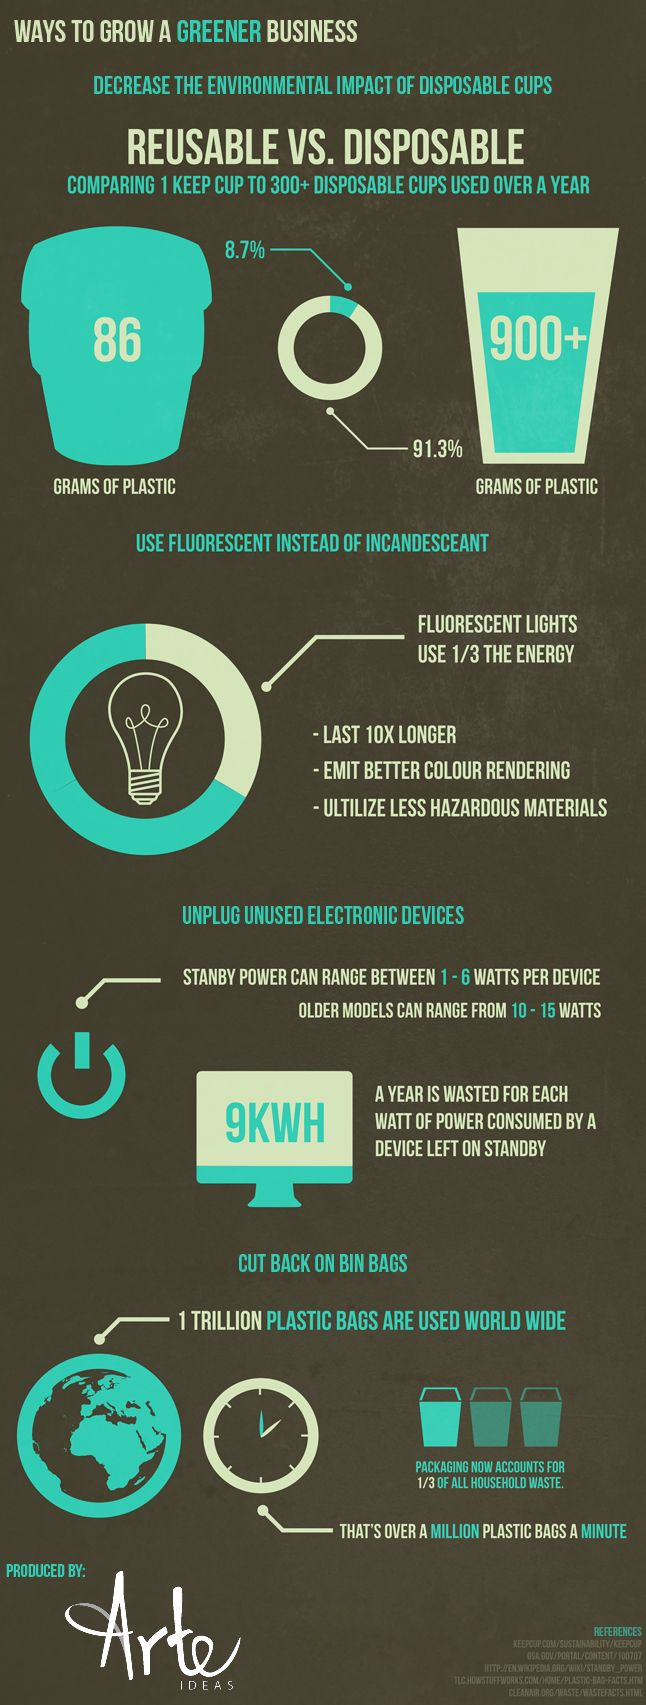 Ways to Grow a Greener Business. For more information about this please feel free to visit our blog: http://www.arteideas.co.uk/blog/ways-to-grow-a-greener-business/ #infographic #environment #keepcup #ecoproducts.